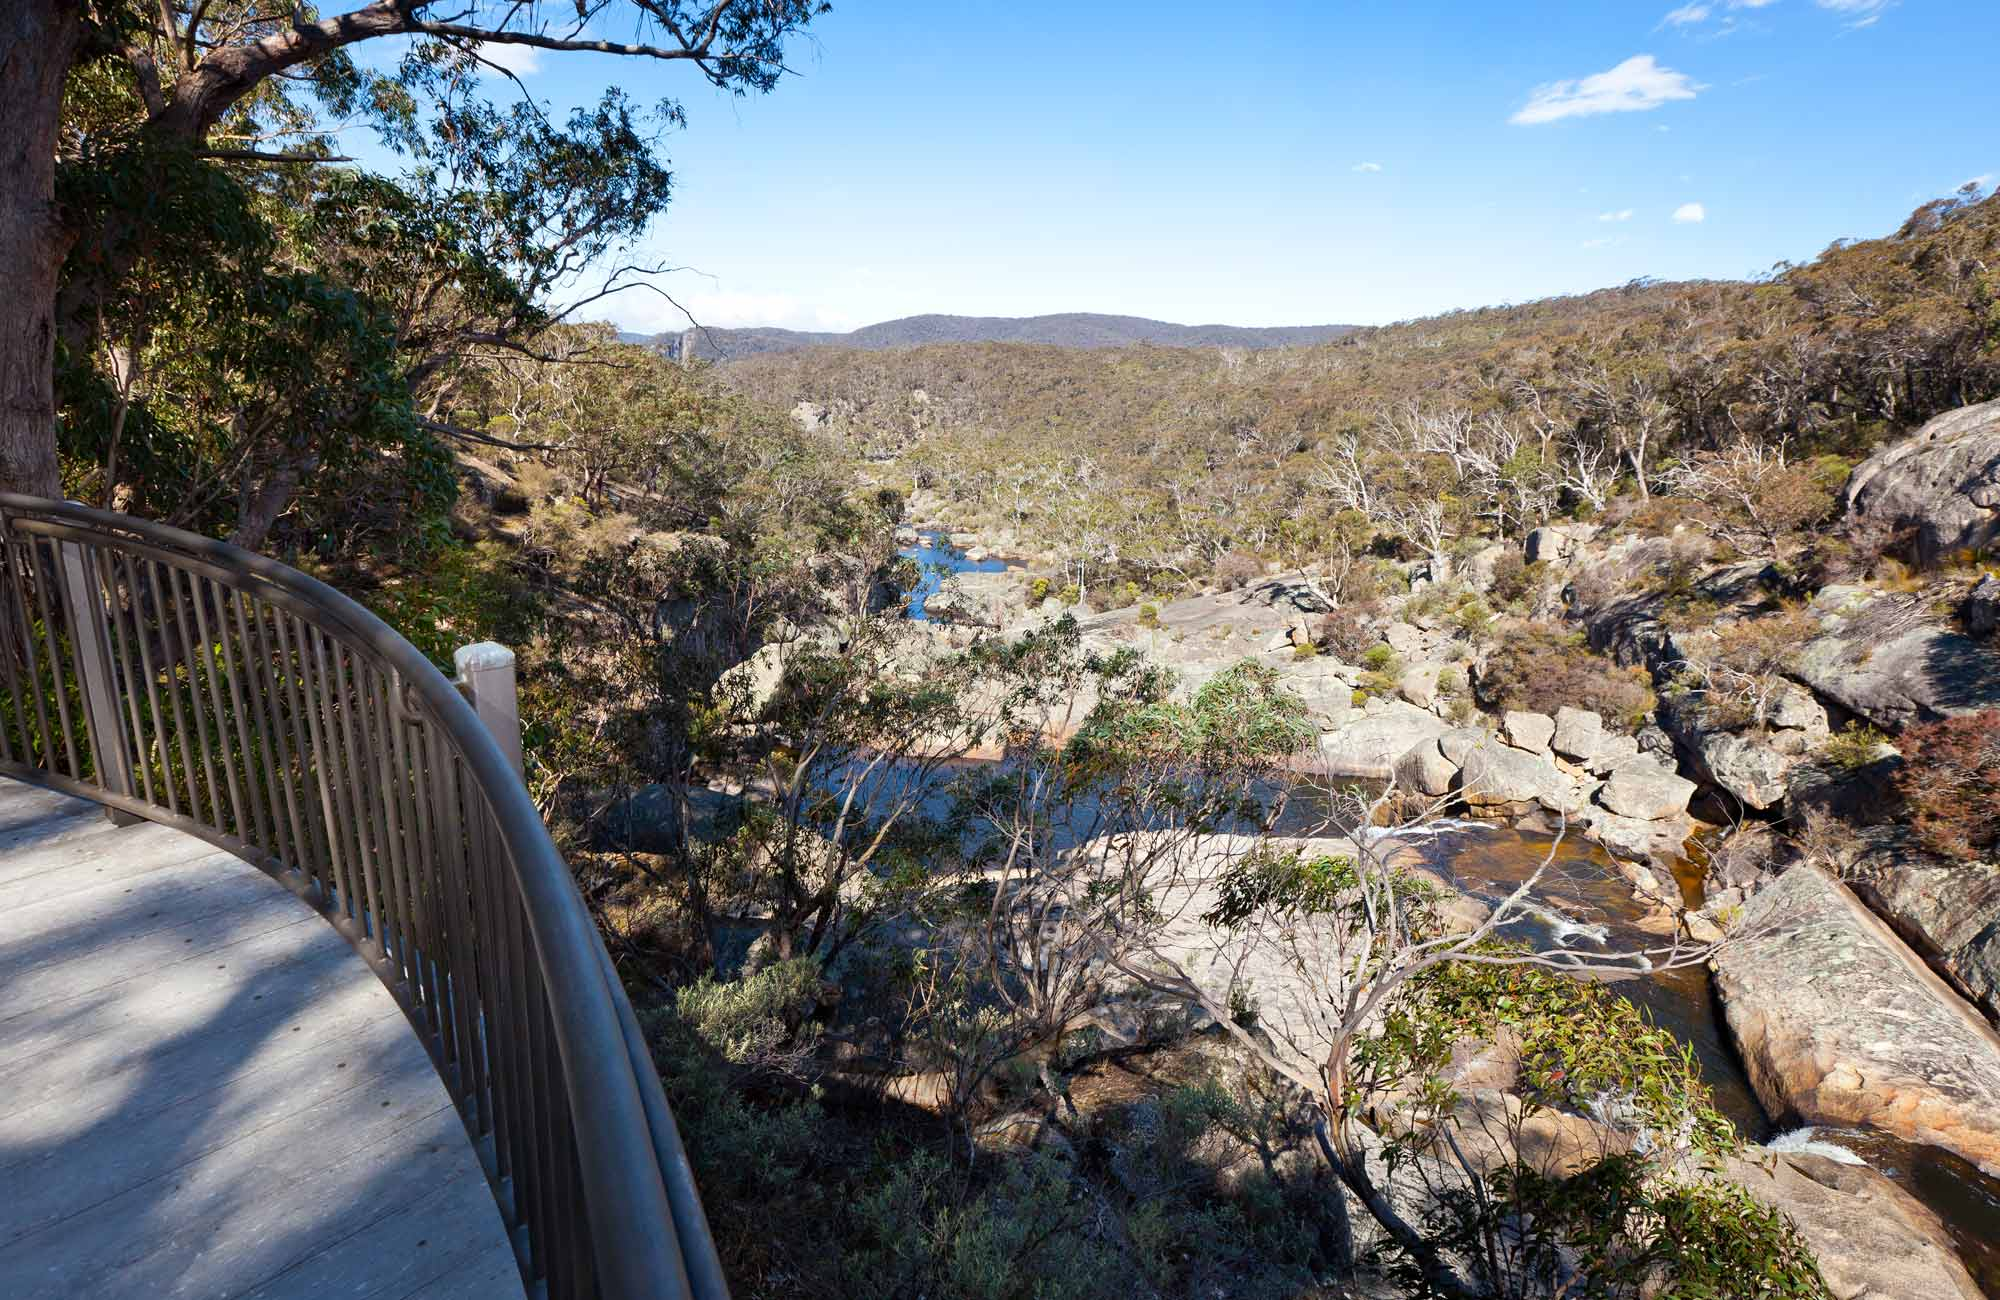 Cascades Viewing Platform, Wadbilliga National Park. Photo: Lucas Boyd Photography/NSW Government